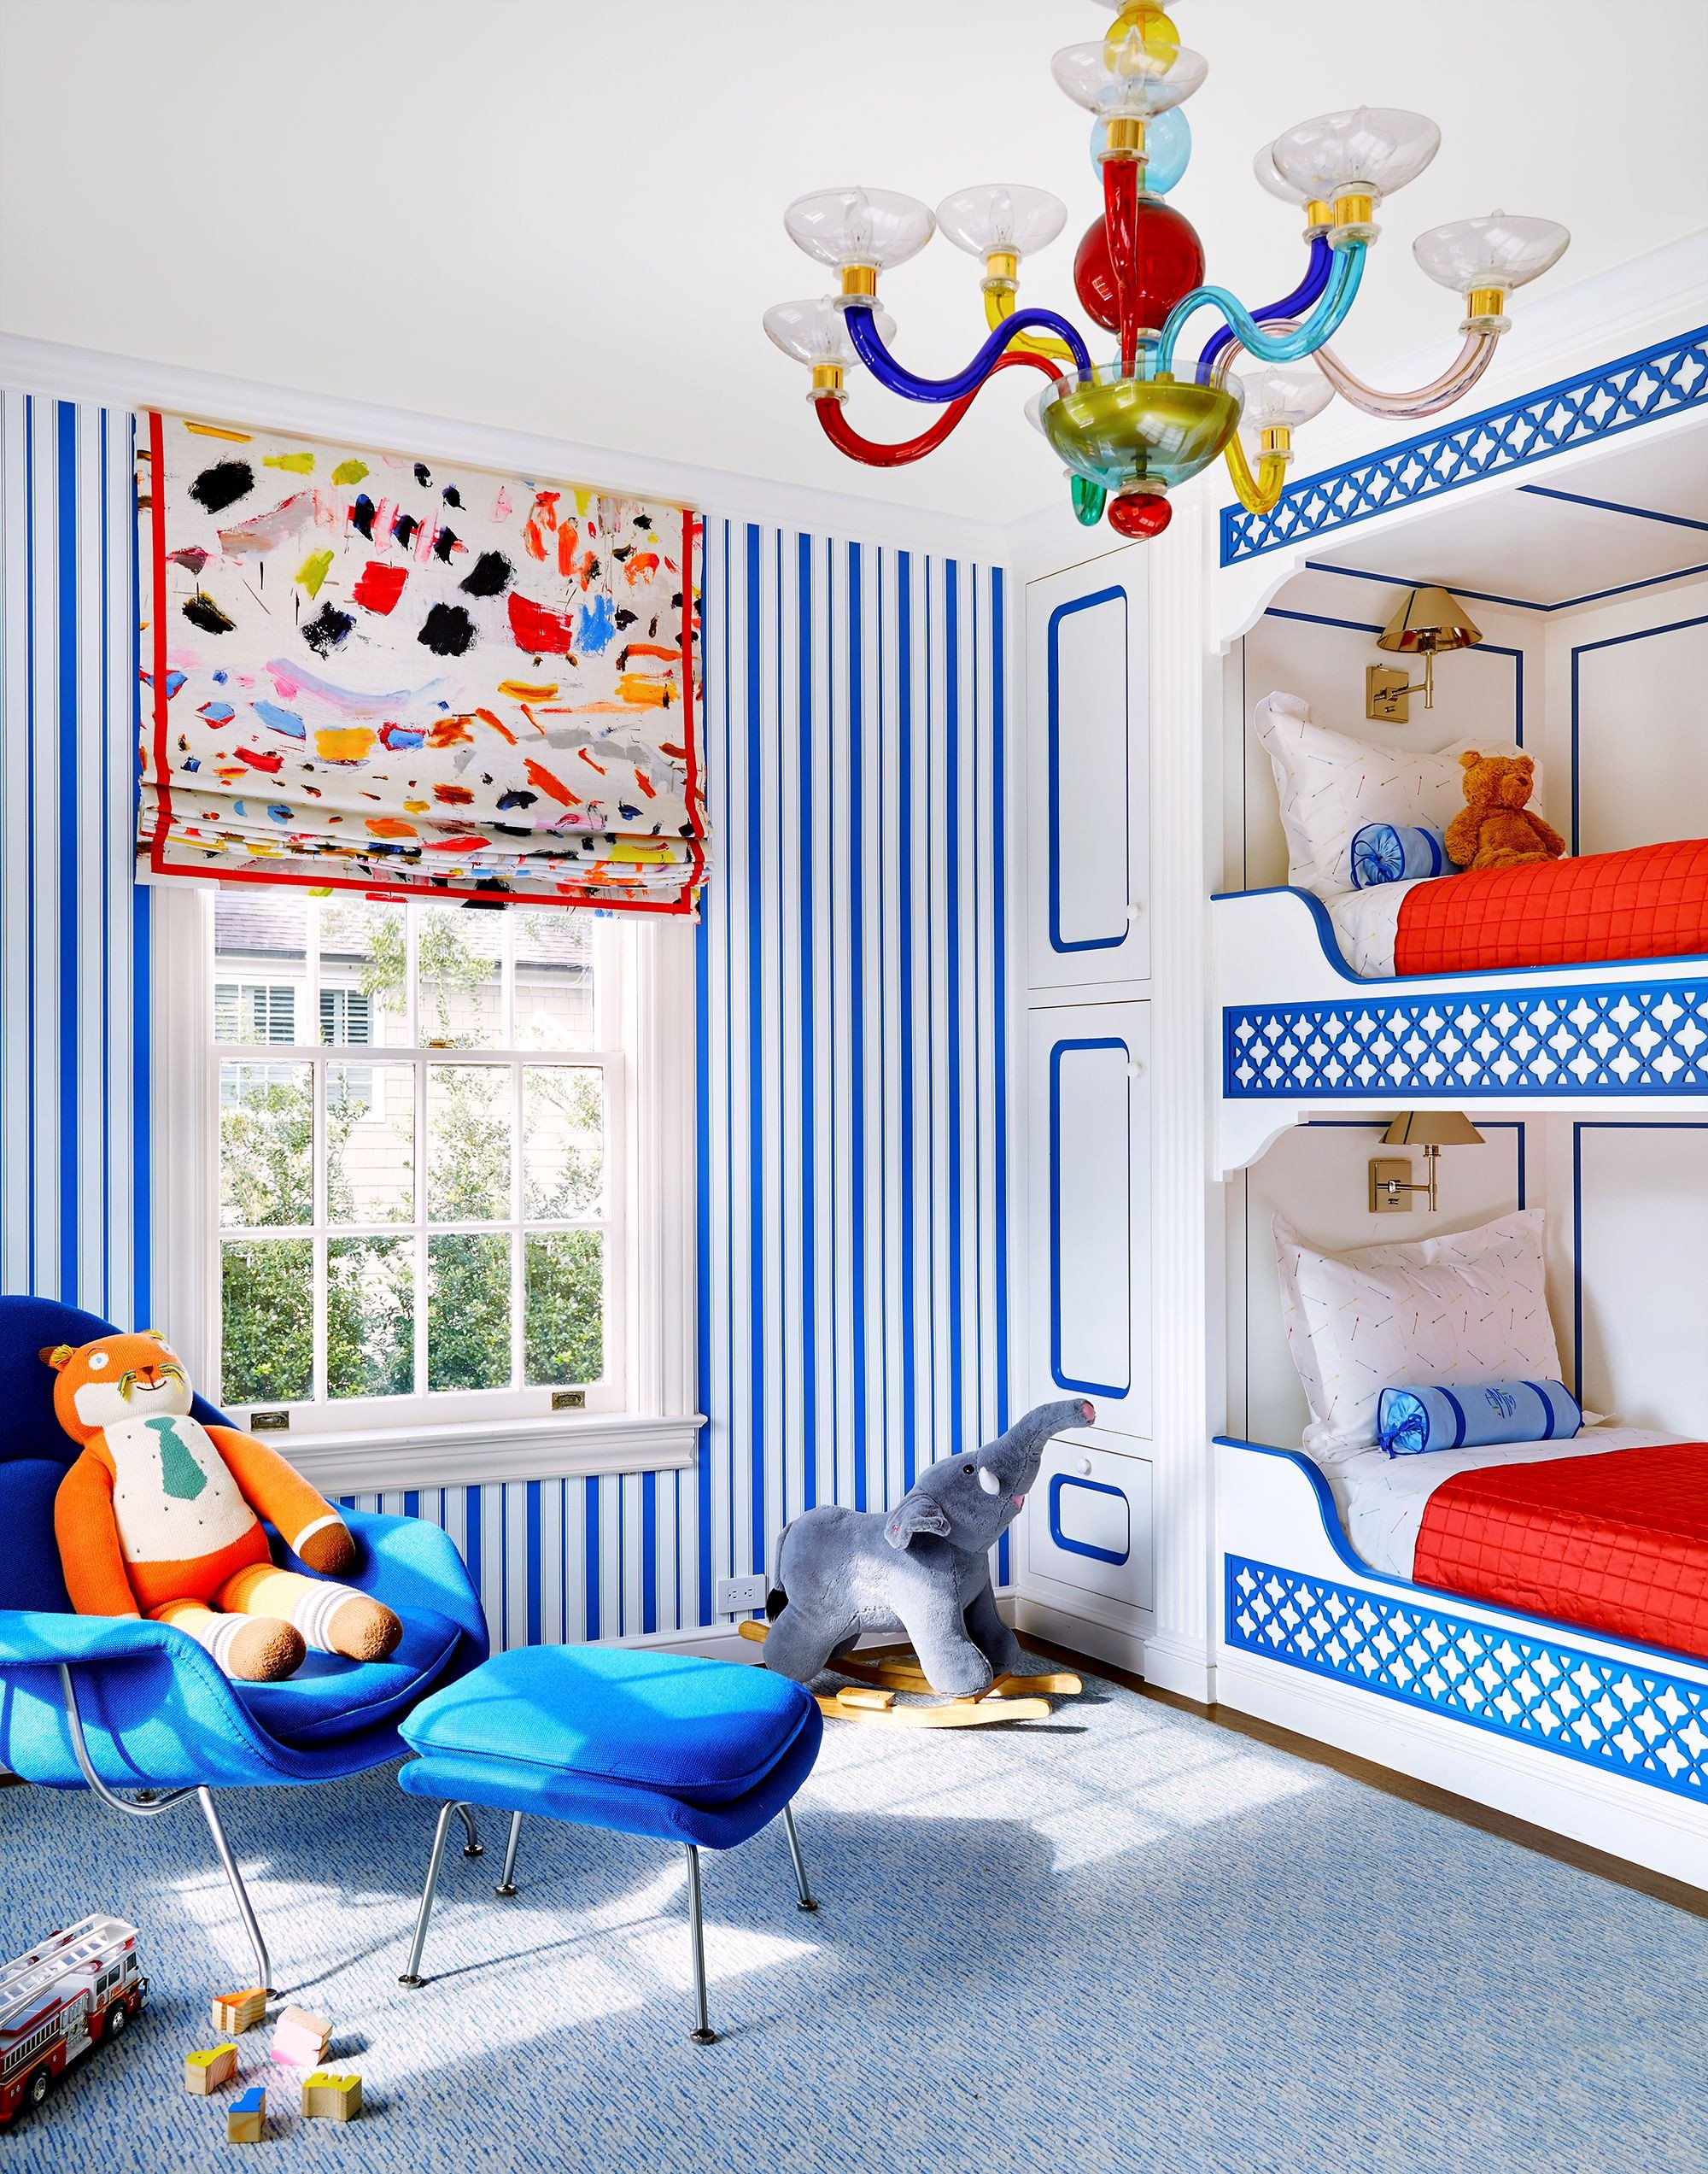 Childrens Bedroom Ideas for Small Bedrooms Elegant 55 Kids Room Design Ideas Cool Kids Bedroom Decor and Style